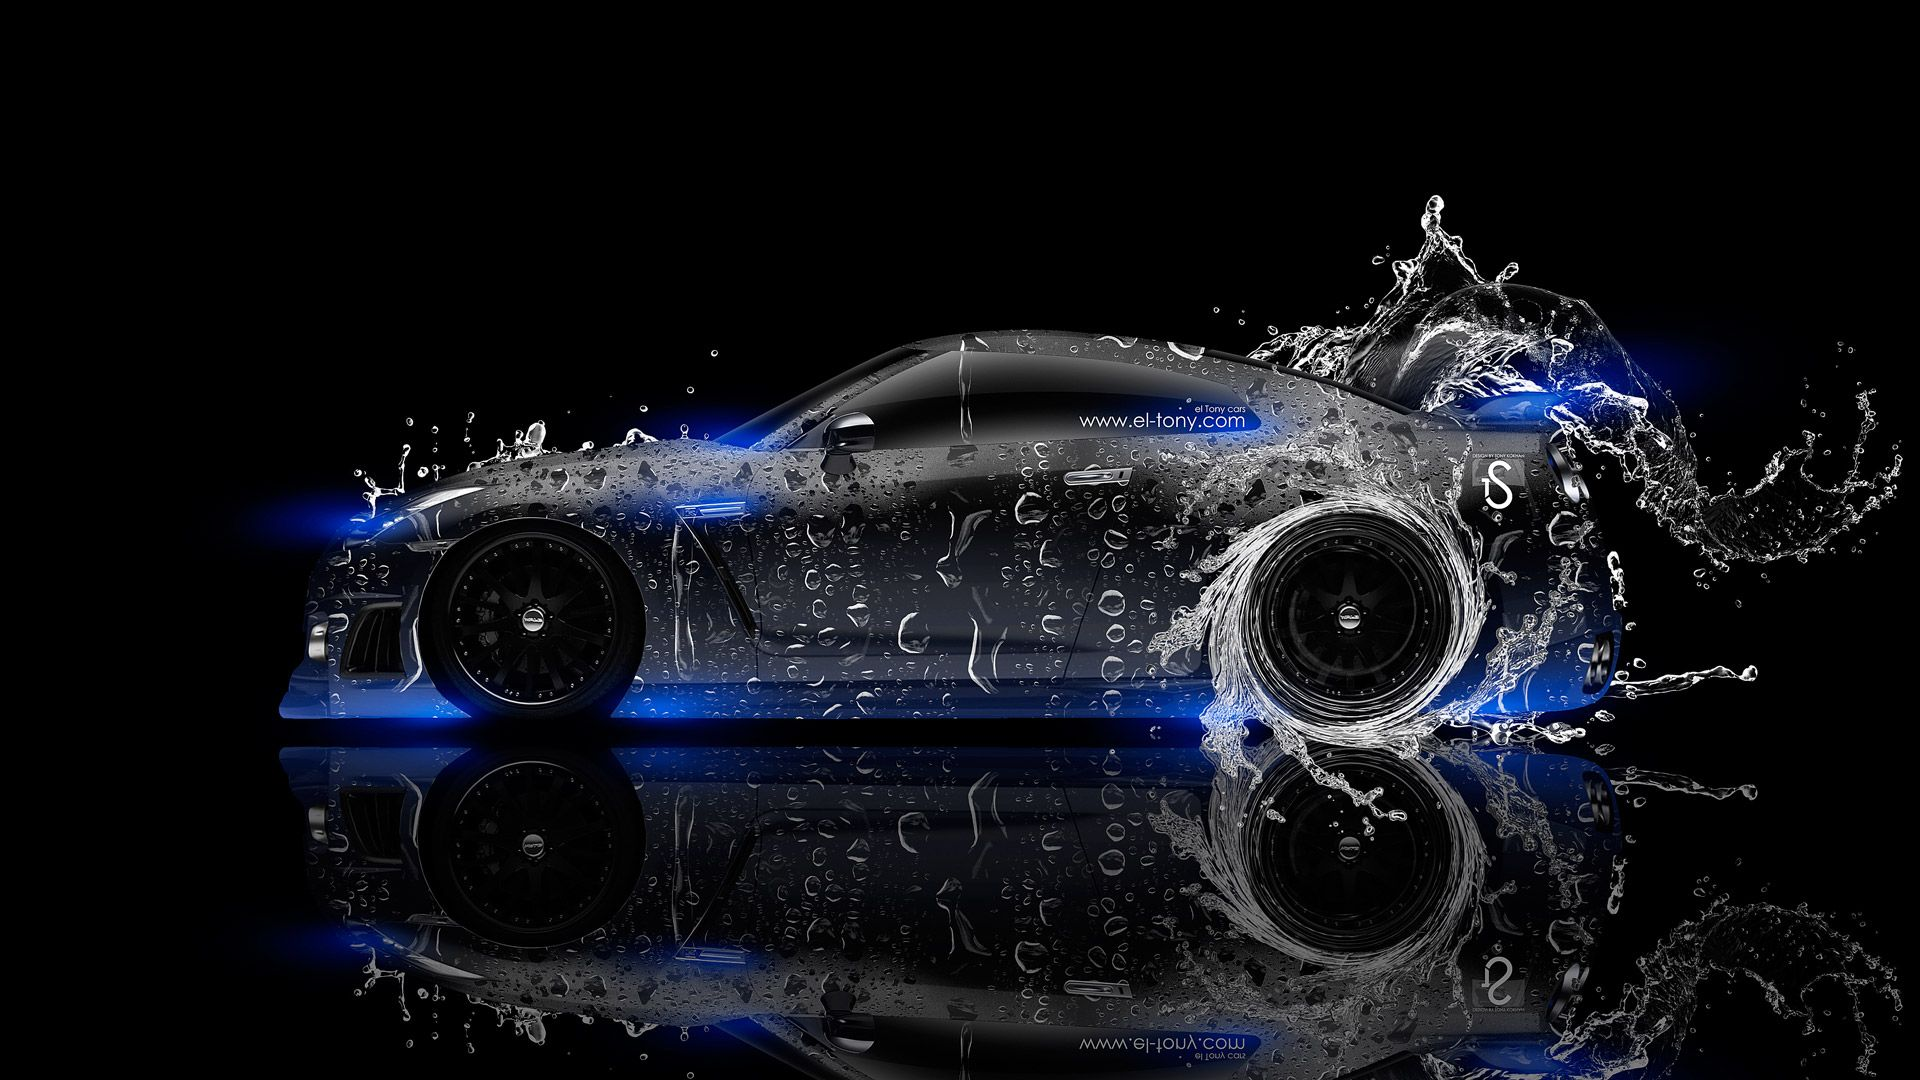 Beau Nissan GTR R35 Water Kiwi Car 2014 « El Tony